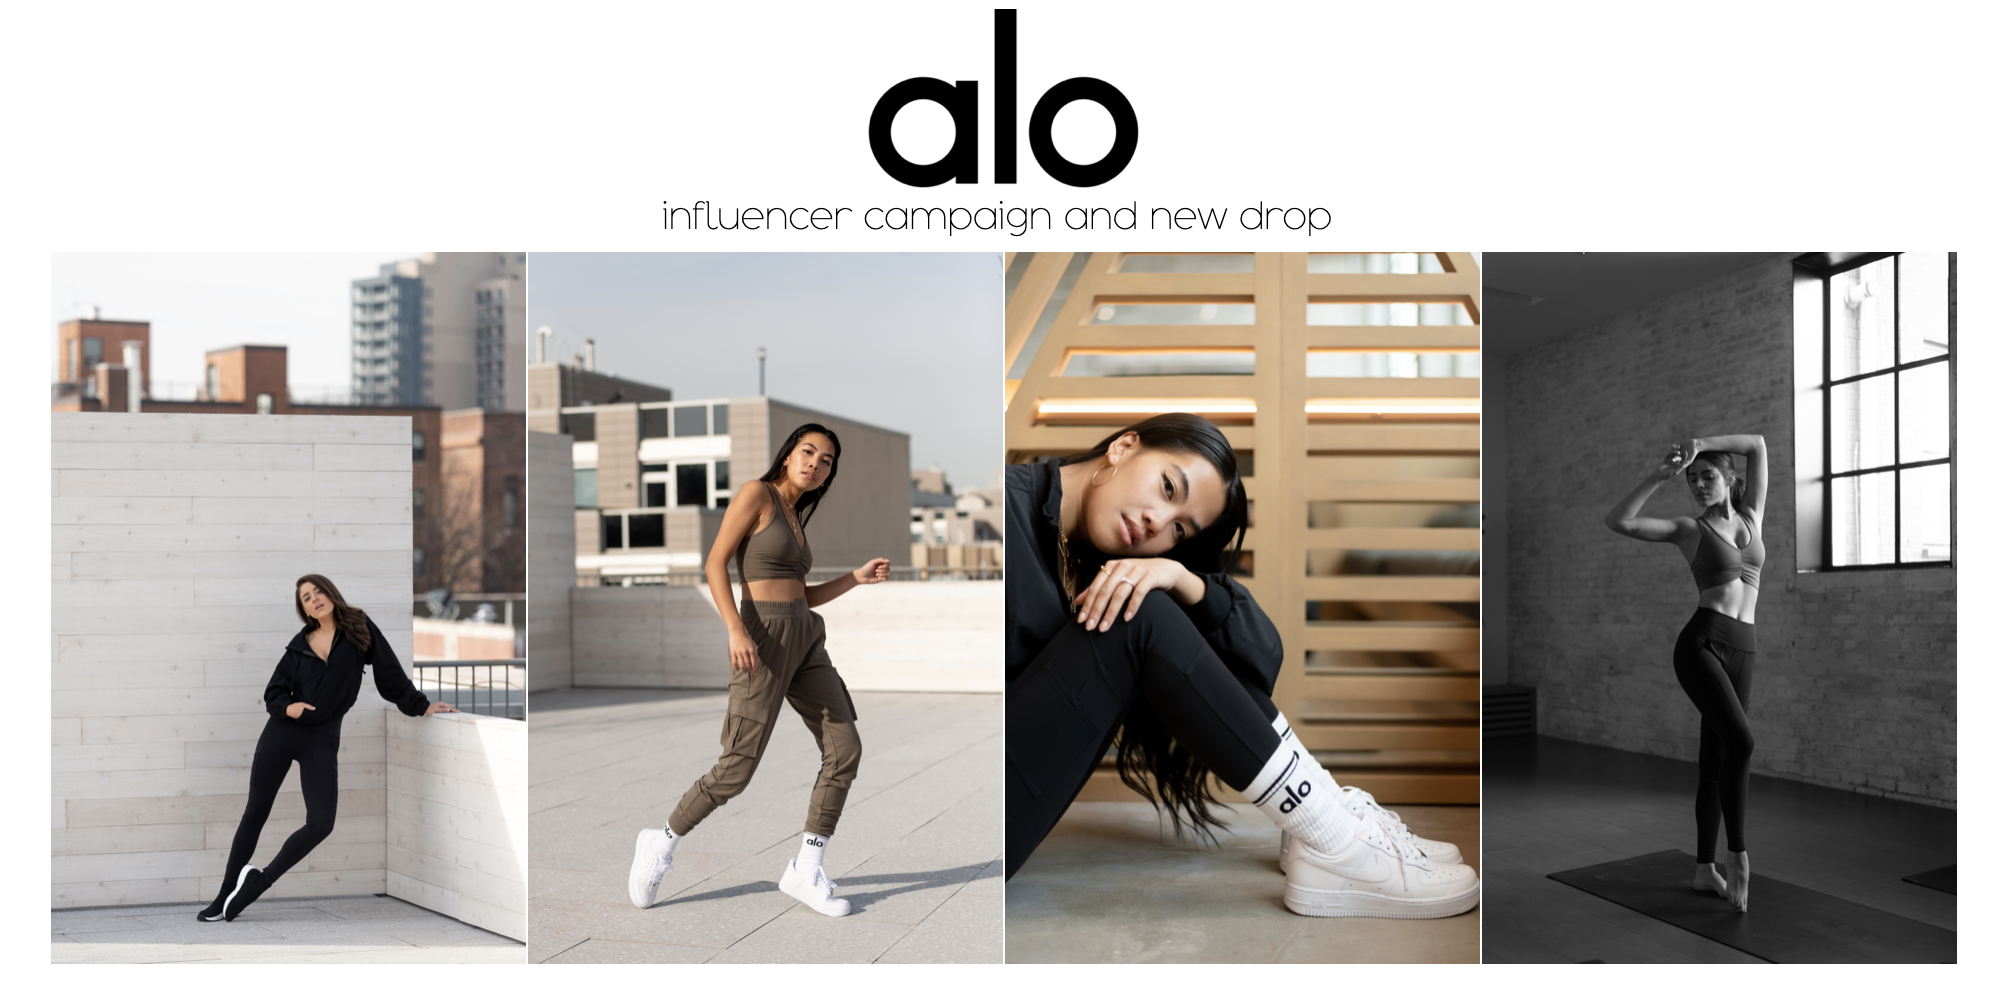 Alo Yoga influencer product launch